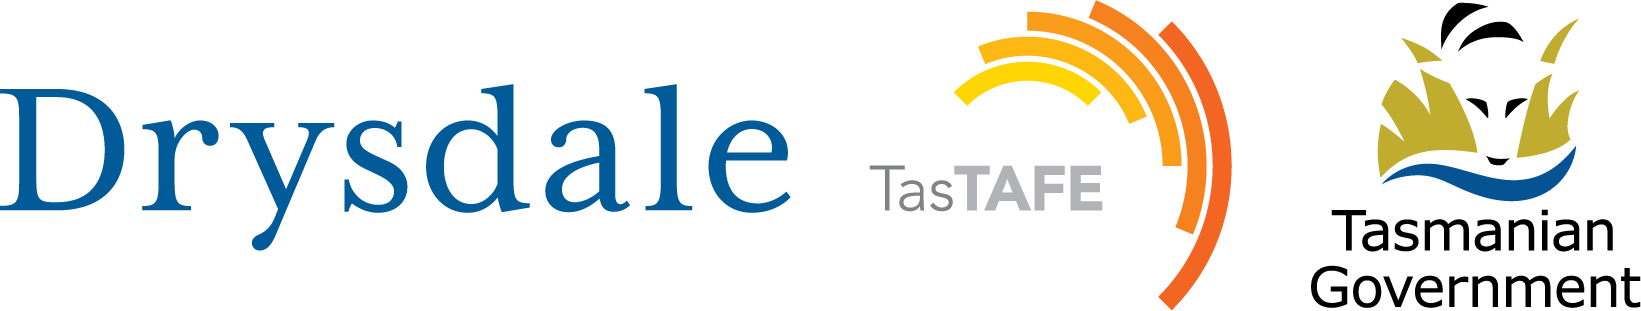 TasTafe logo and Drysdale